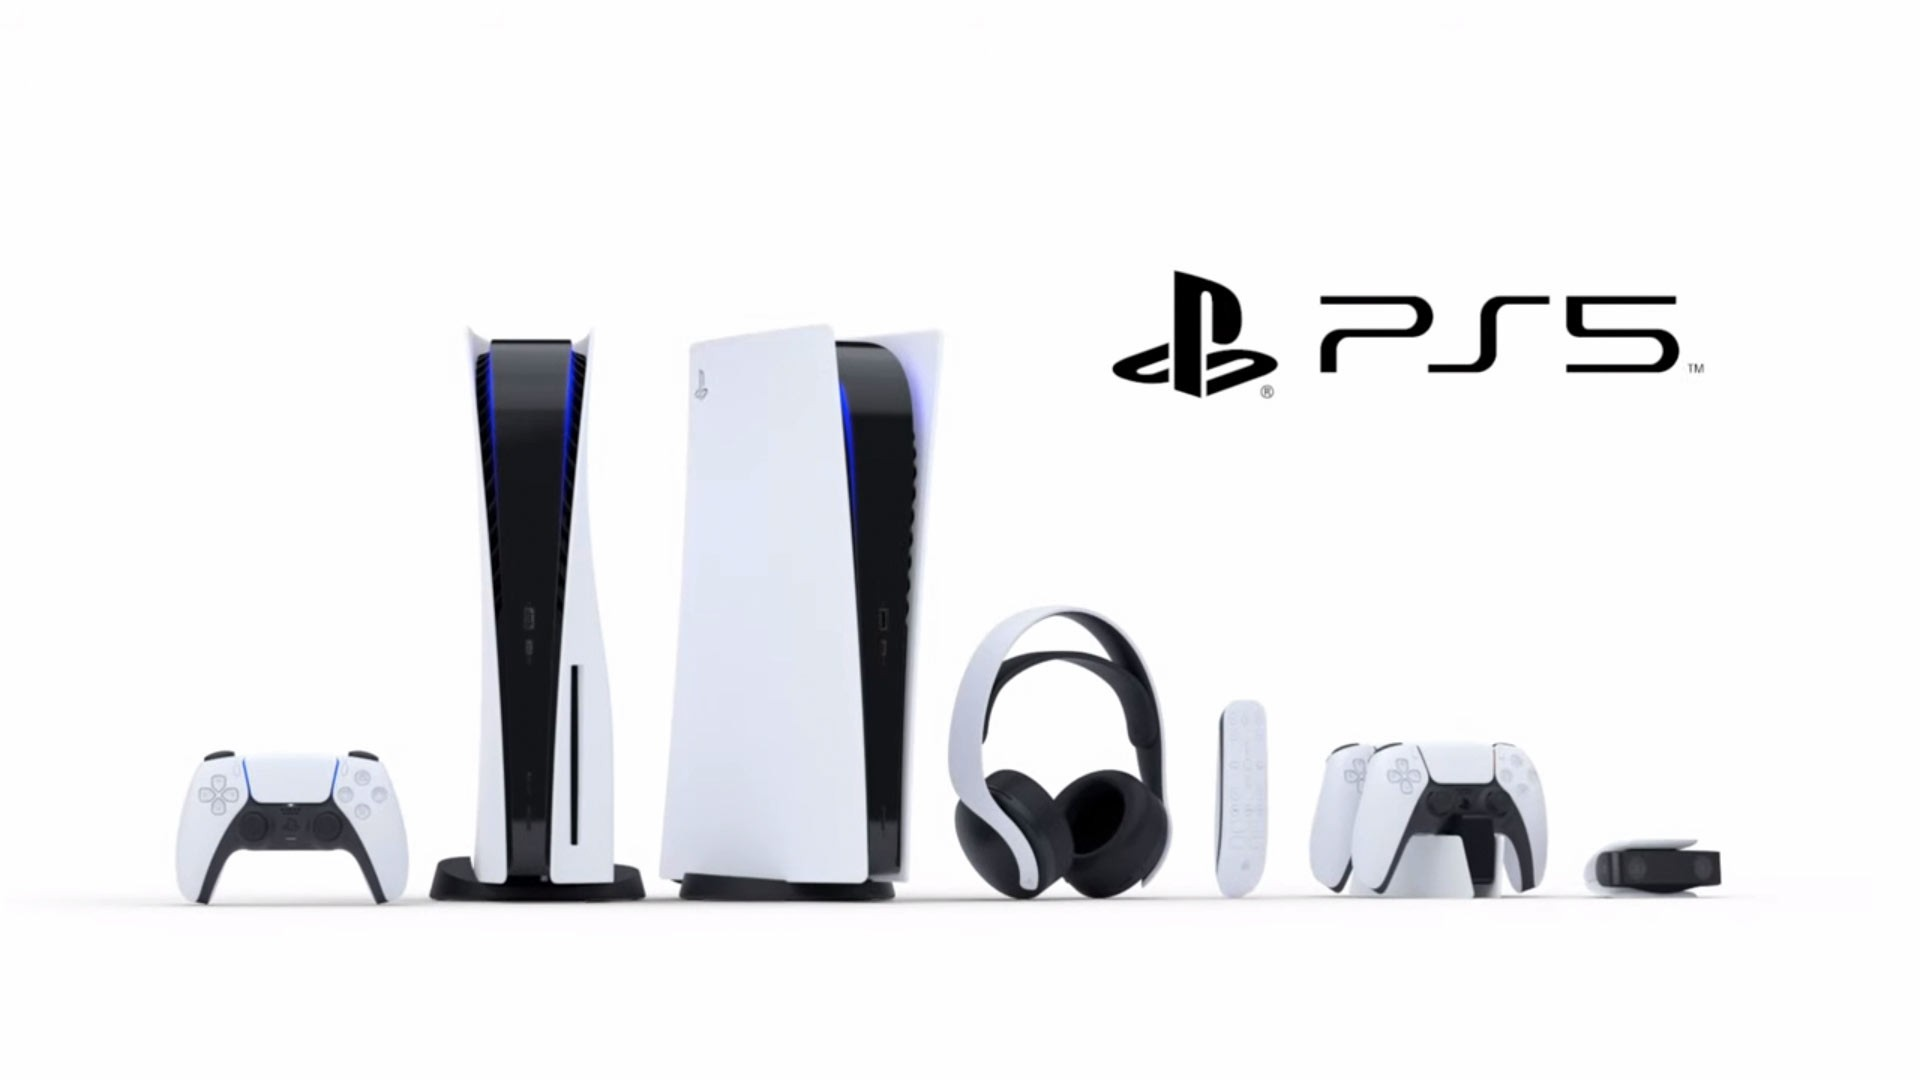 PlayStation 5 Console Images   PlayStation Universe 1920x1080